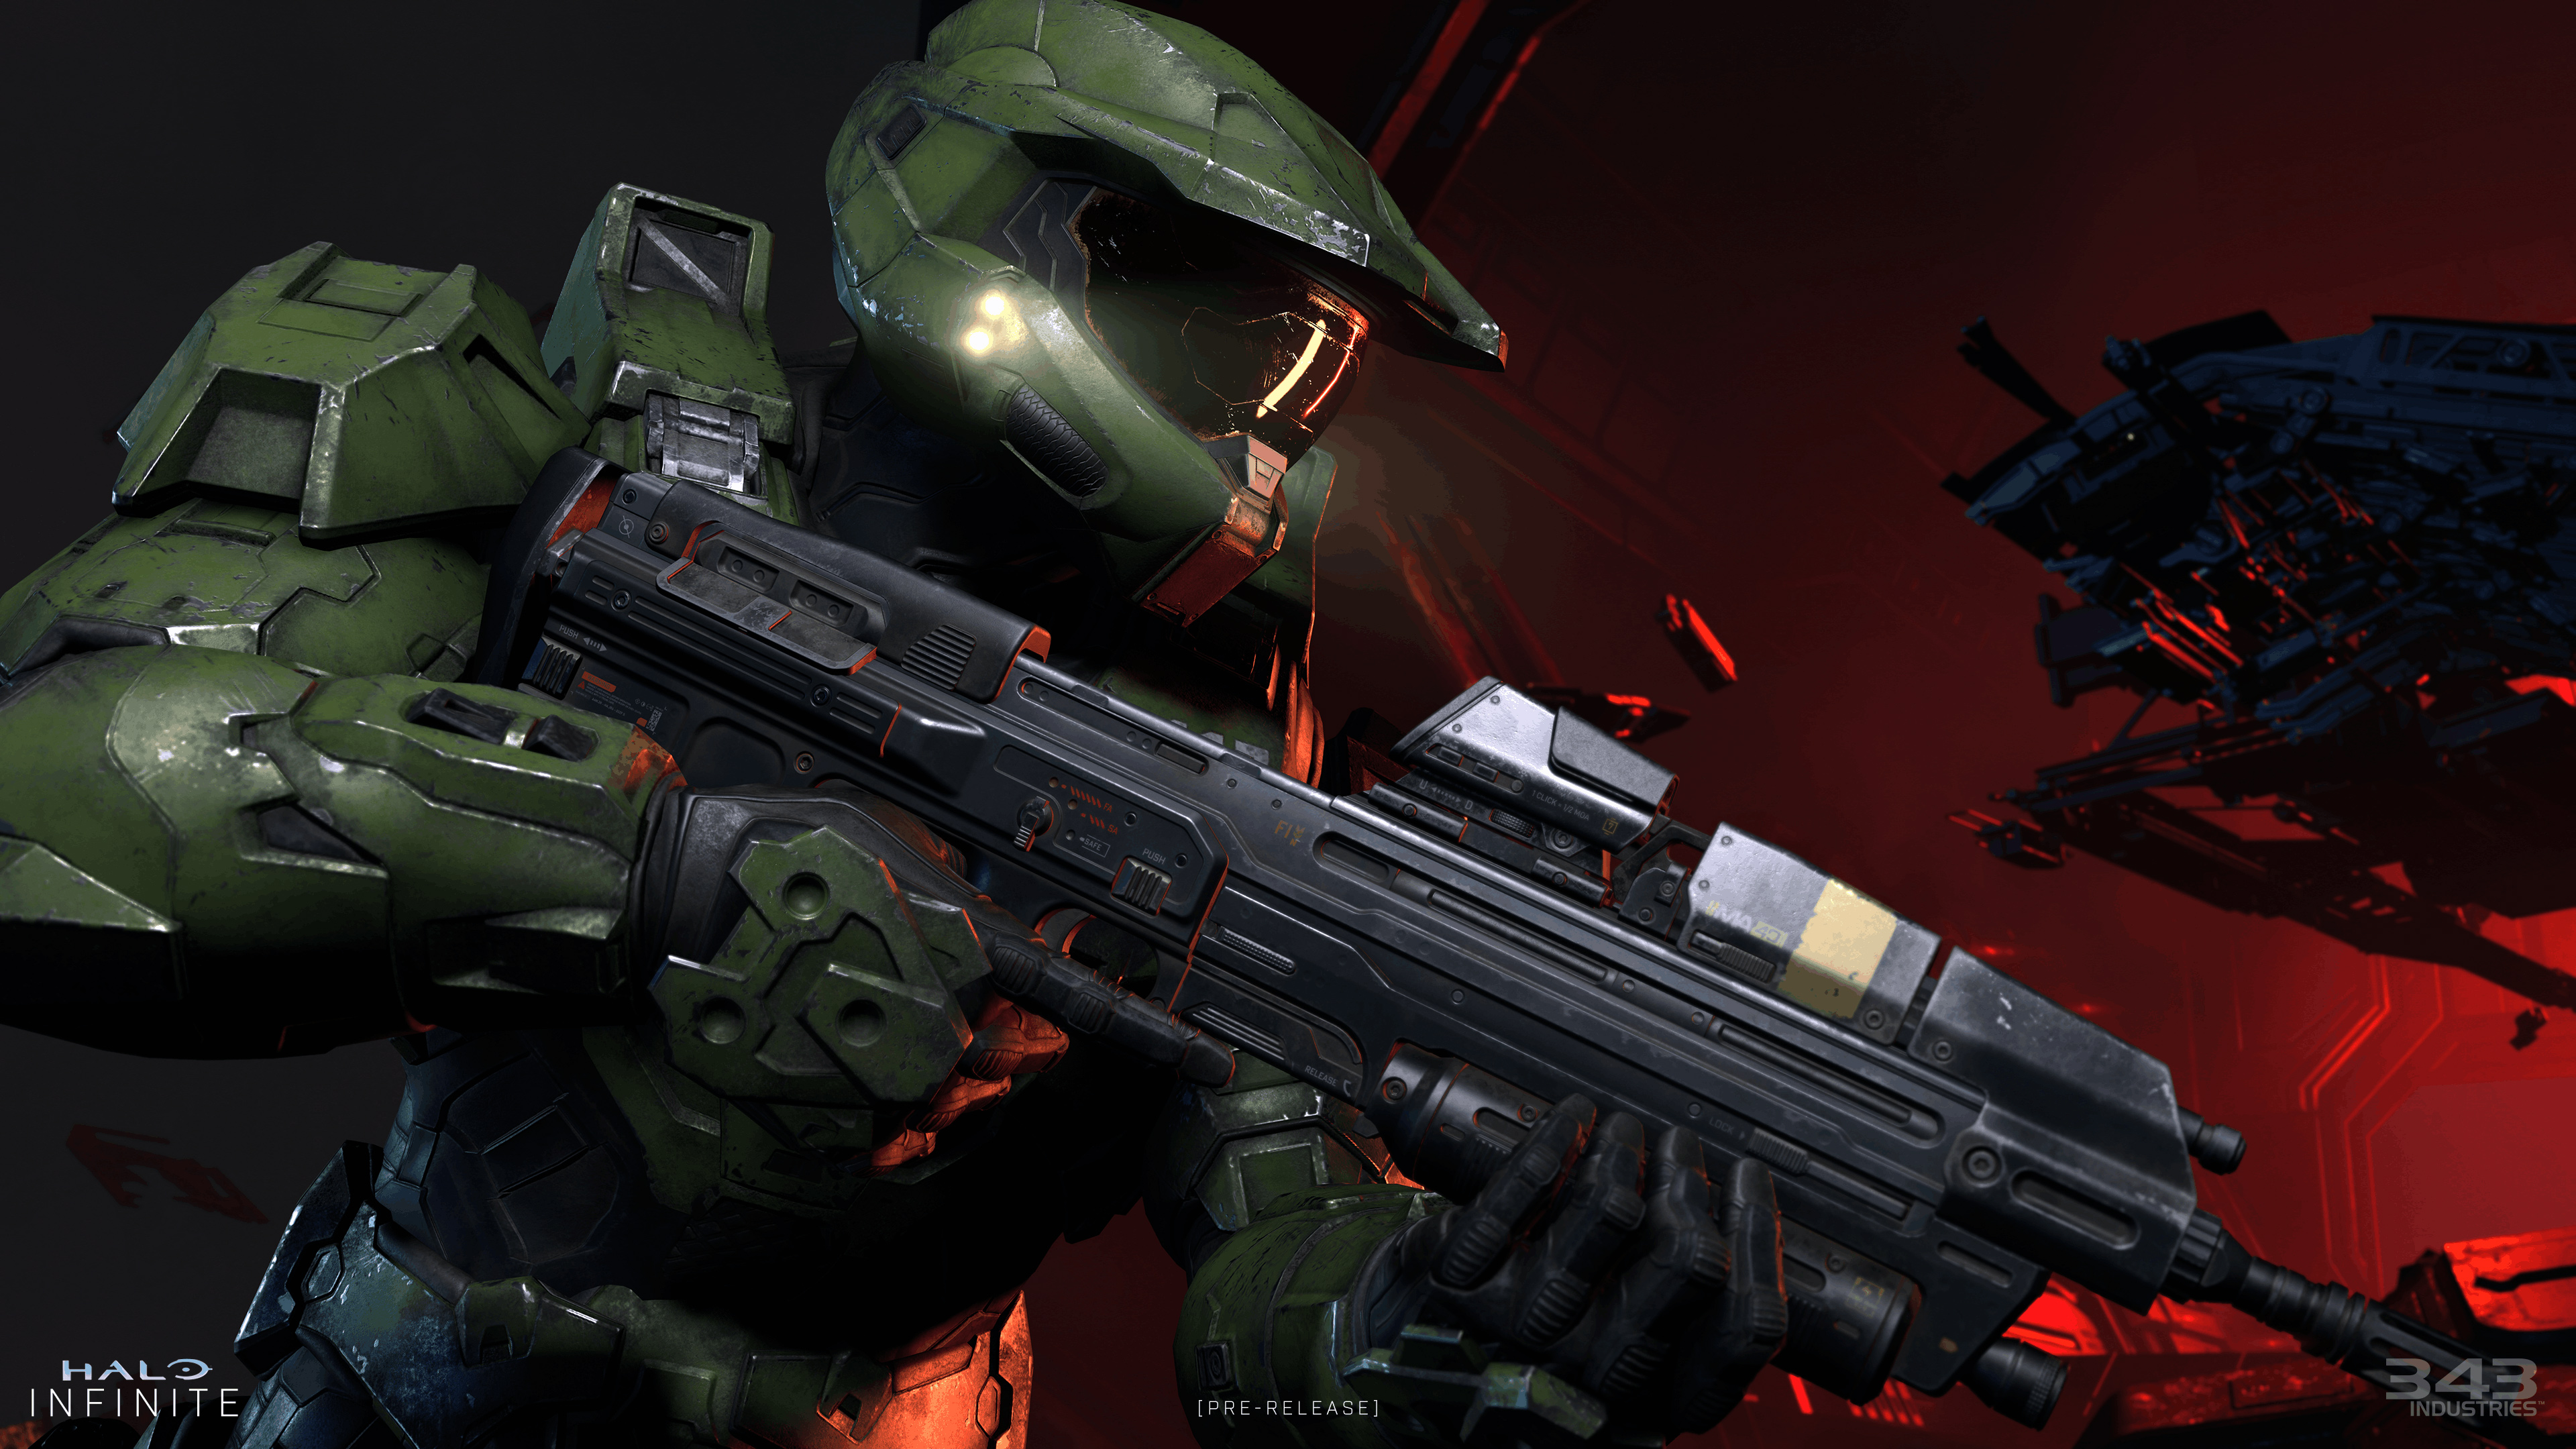 Master Chief holding an MA40 assault rifle in Halo Infinite